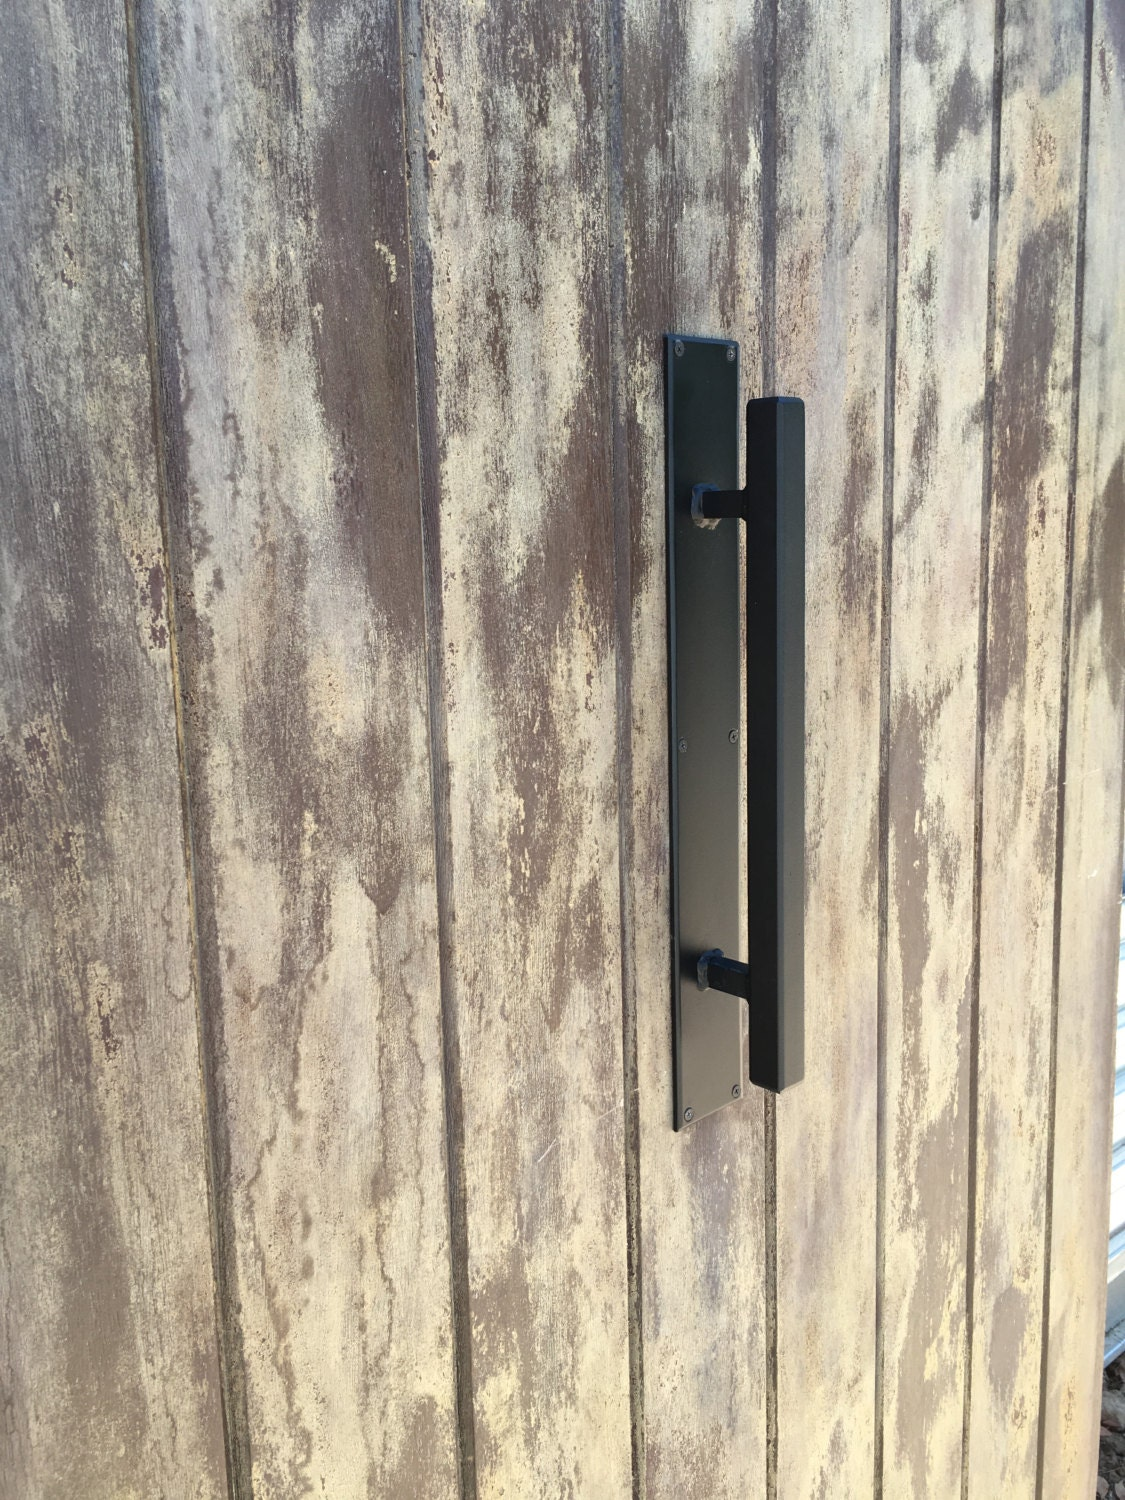 barn door handle 1 x 1 square handle modern style door handle wrought iron door handle. Black Bedroom Furniture Sets. Home Design Ideas